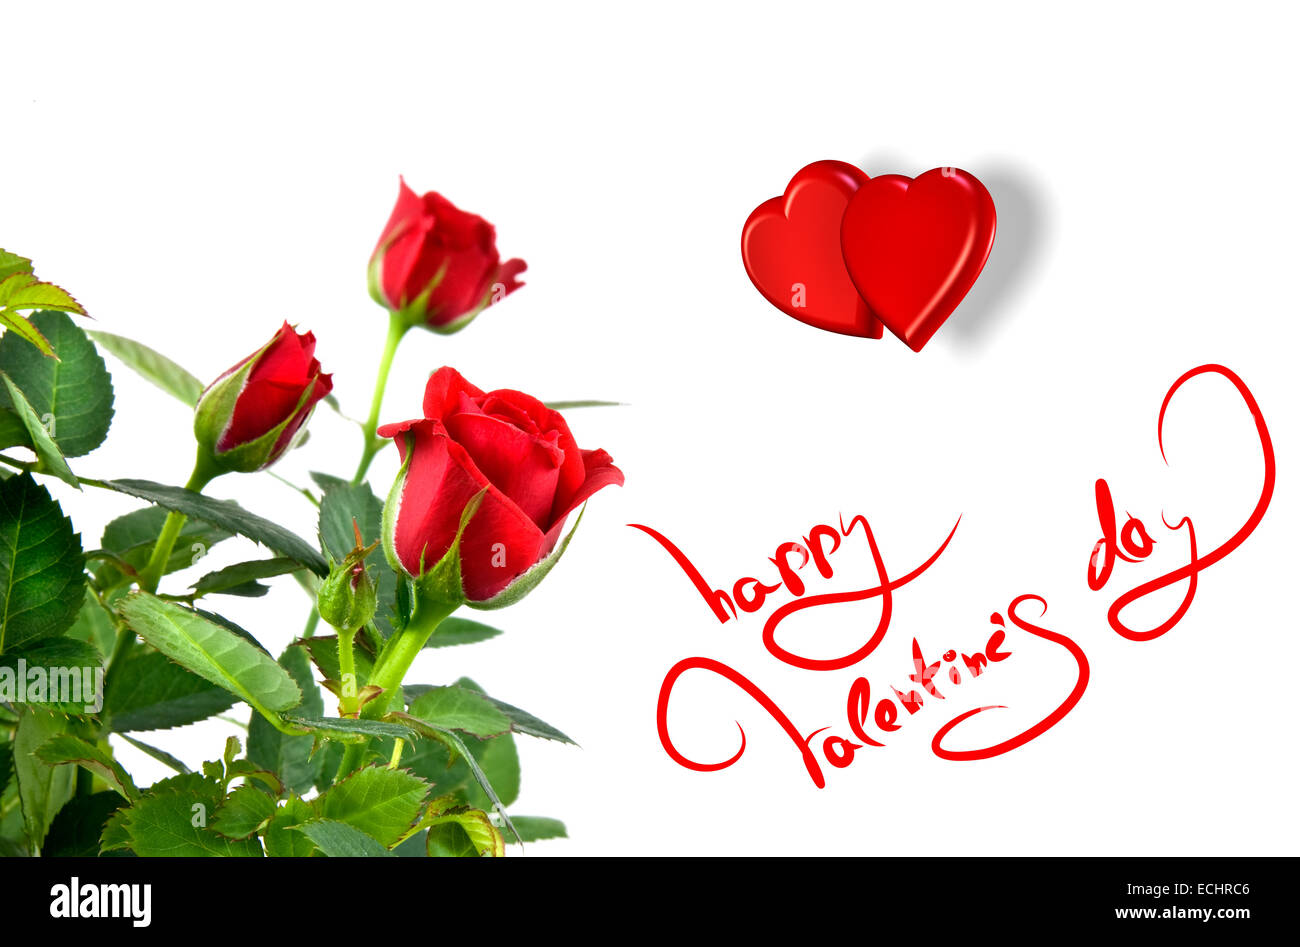 Red Roses With Hearts And Greetings For Valentines Day Stock Photo